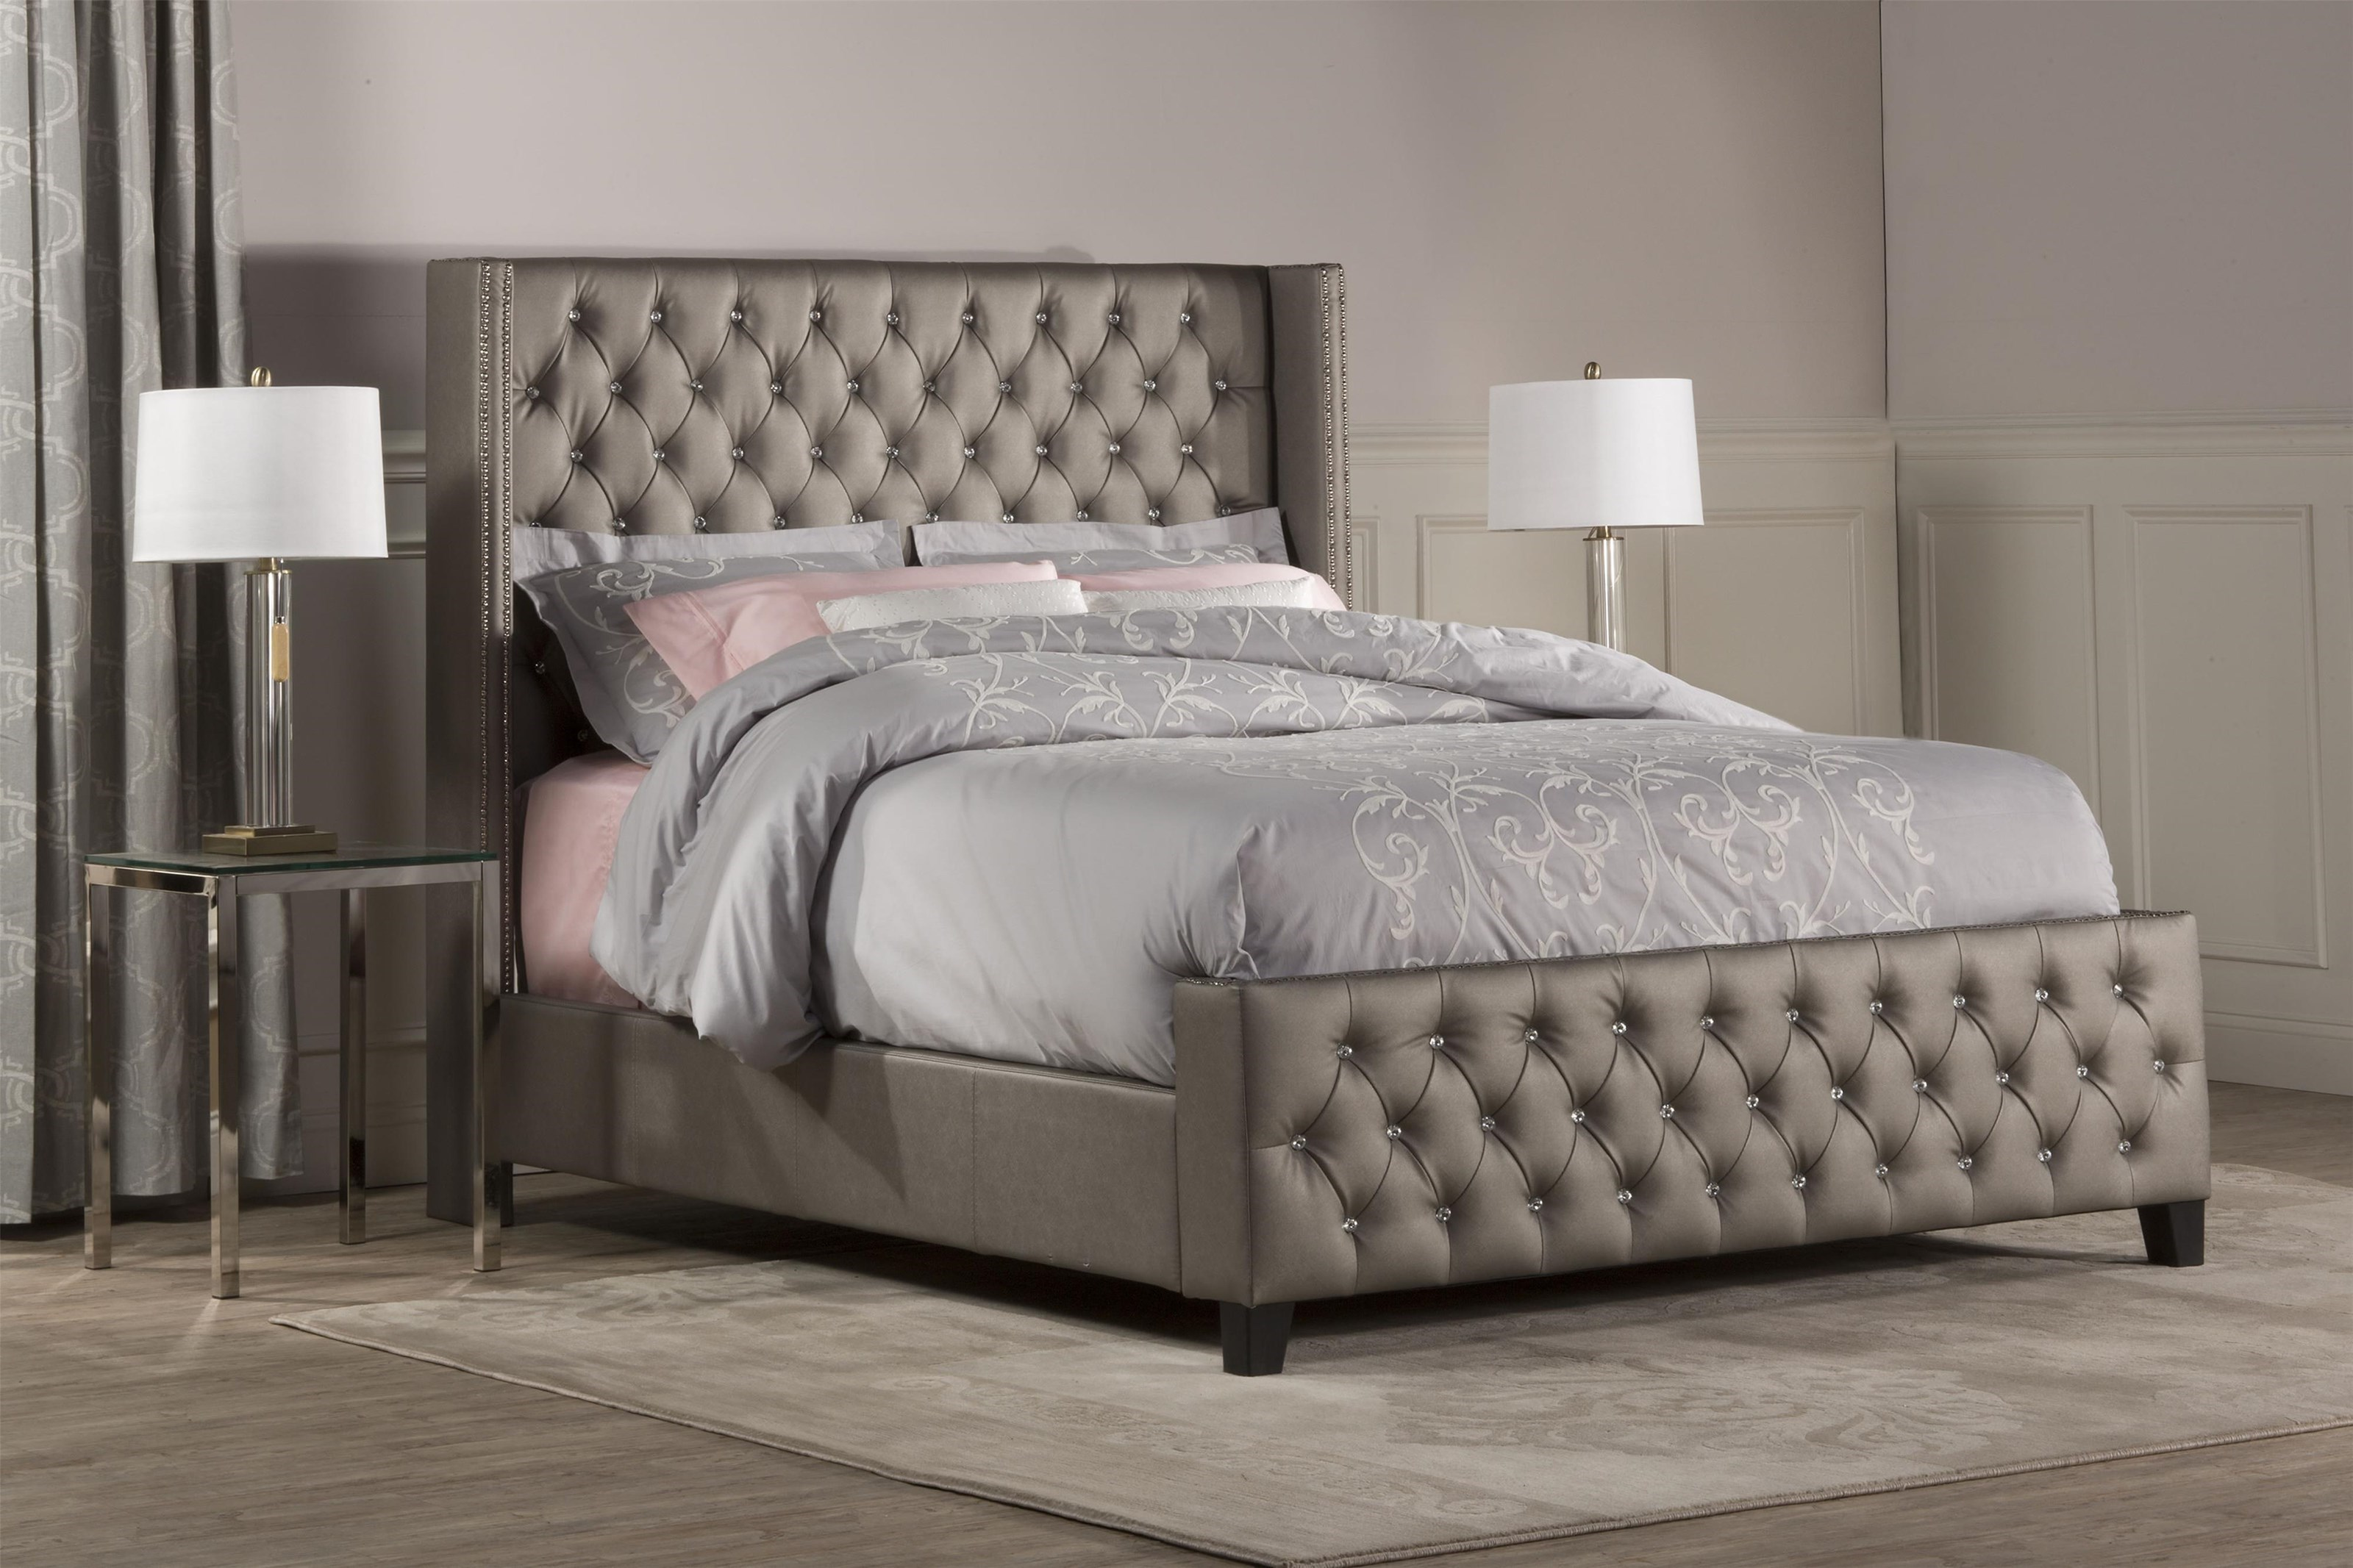 Hillsdale Memphis Bed King Bed